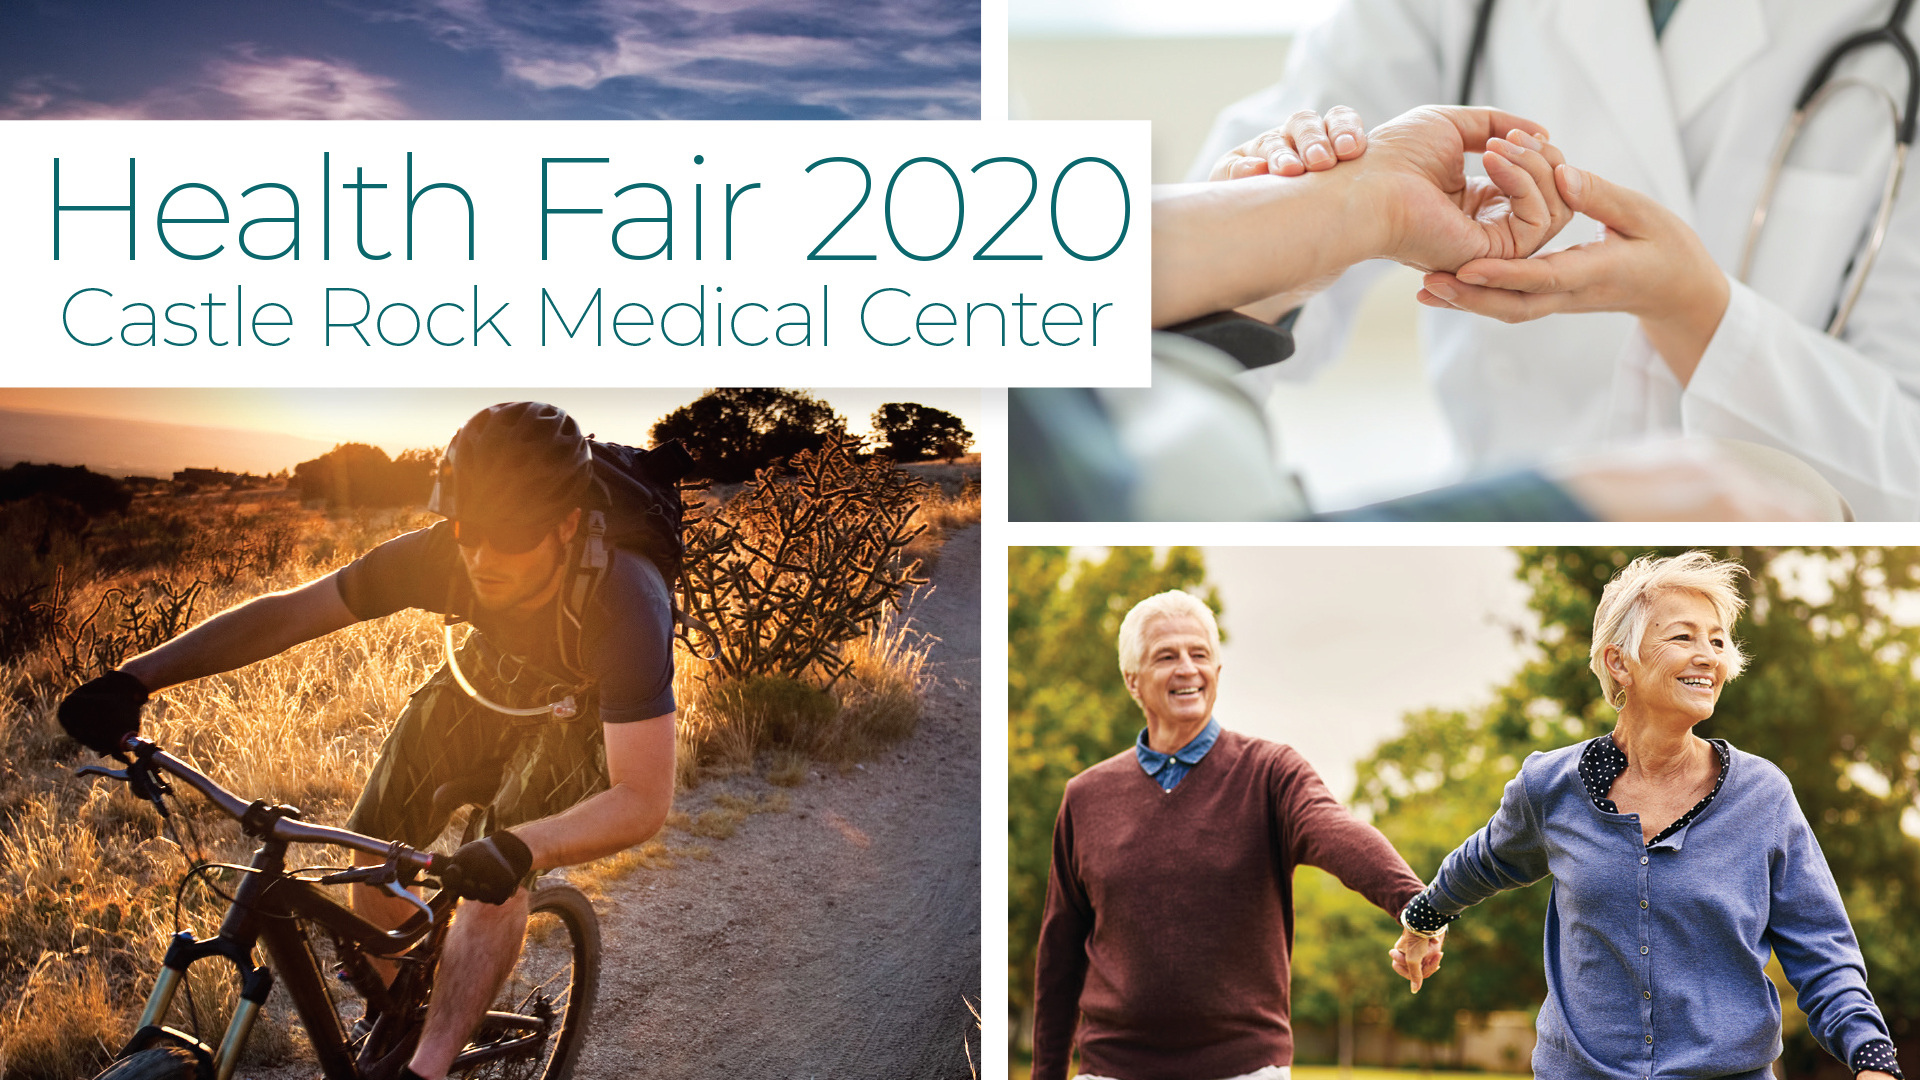 The 2020 Castle Rock Medical Center Health Fair is Here!